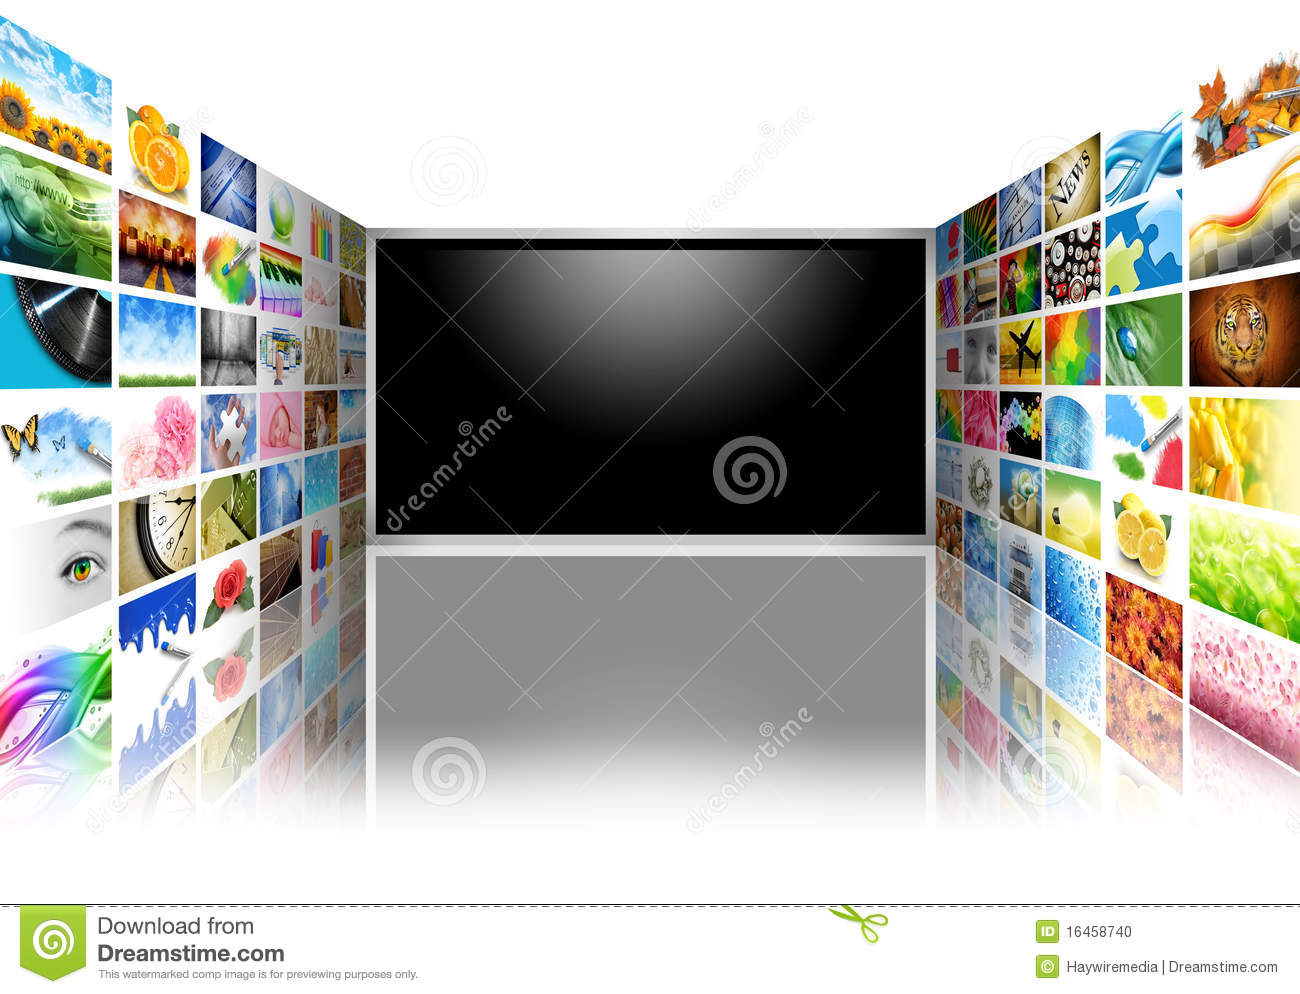 Flat Screen Television with Images on White